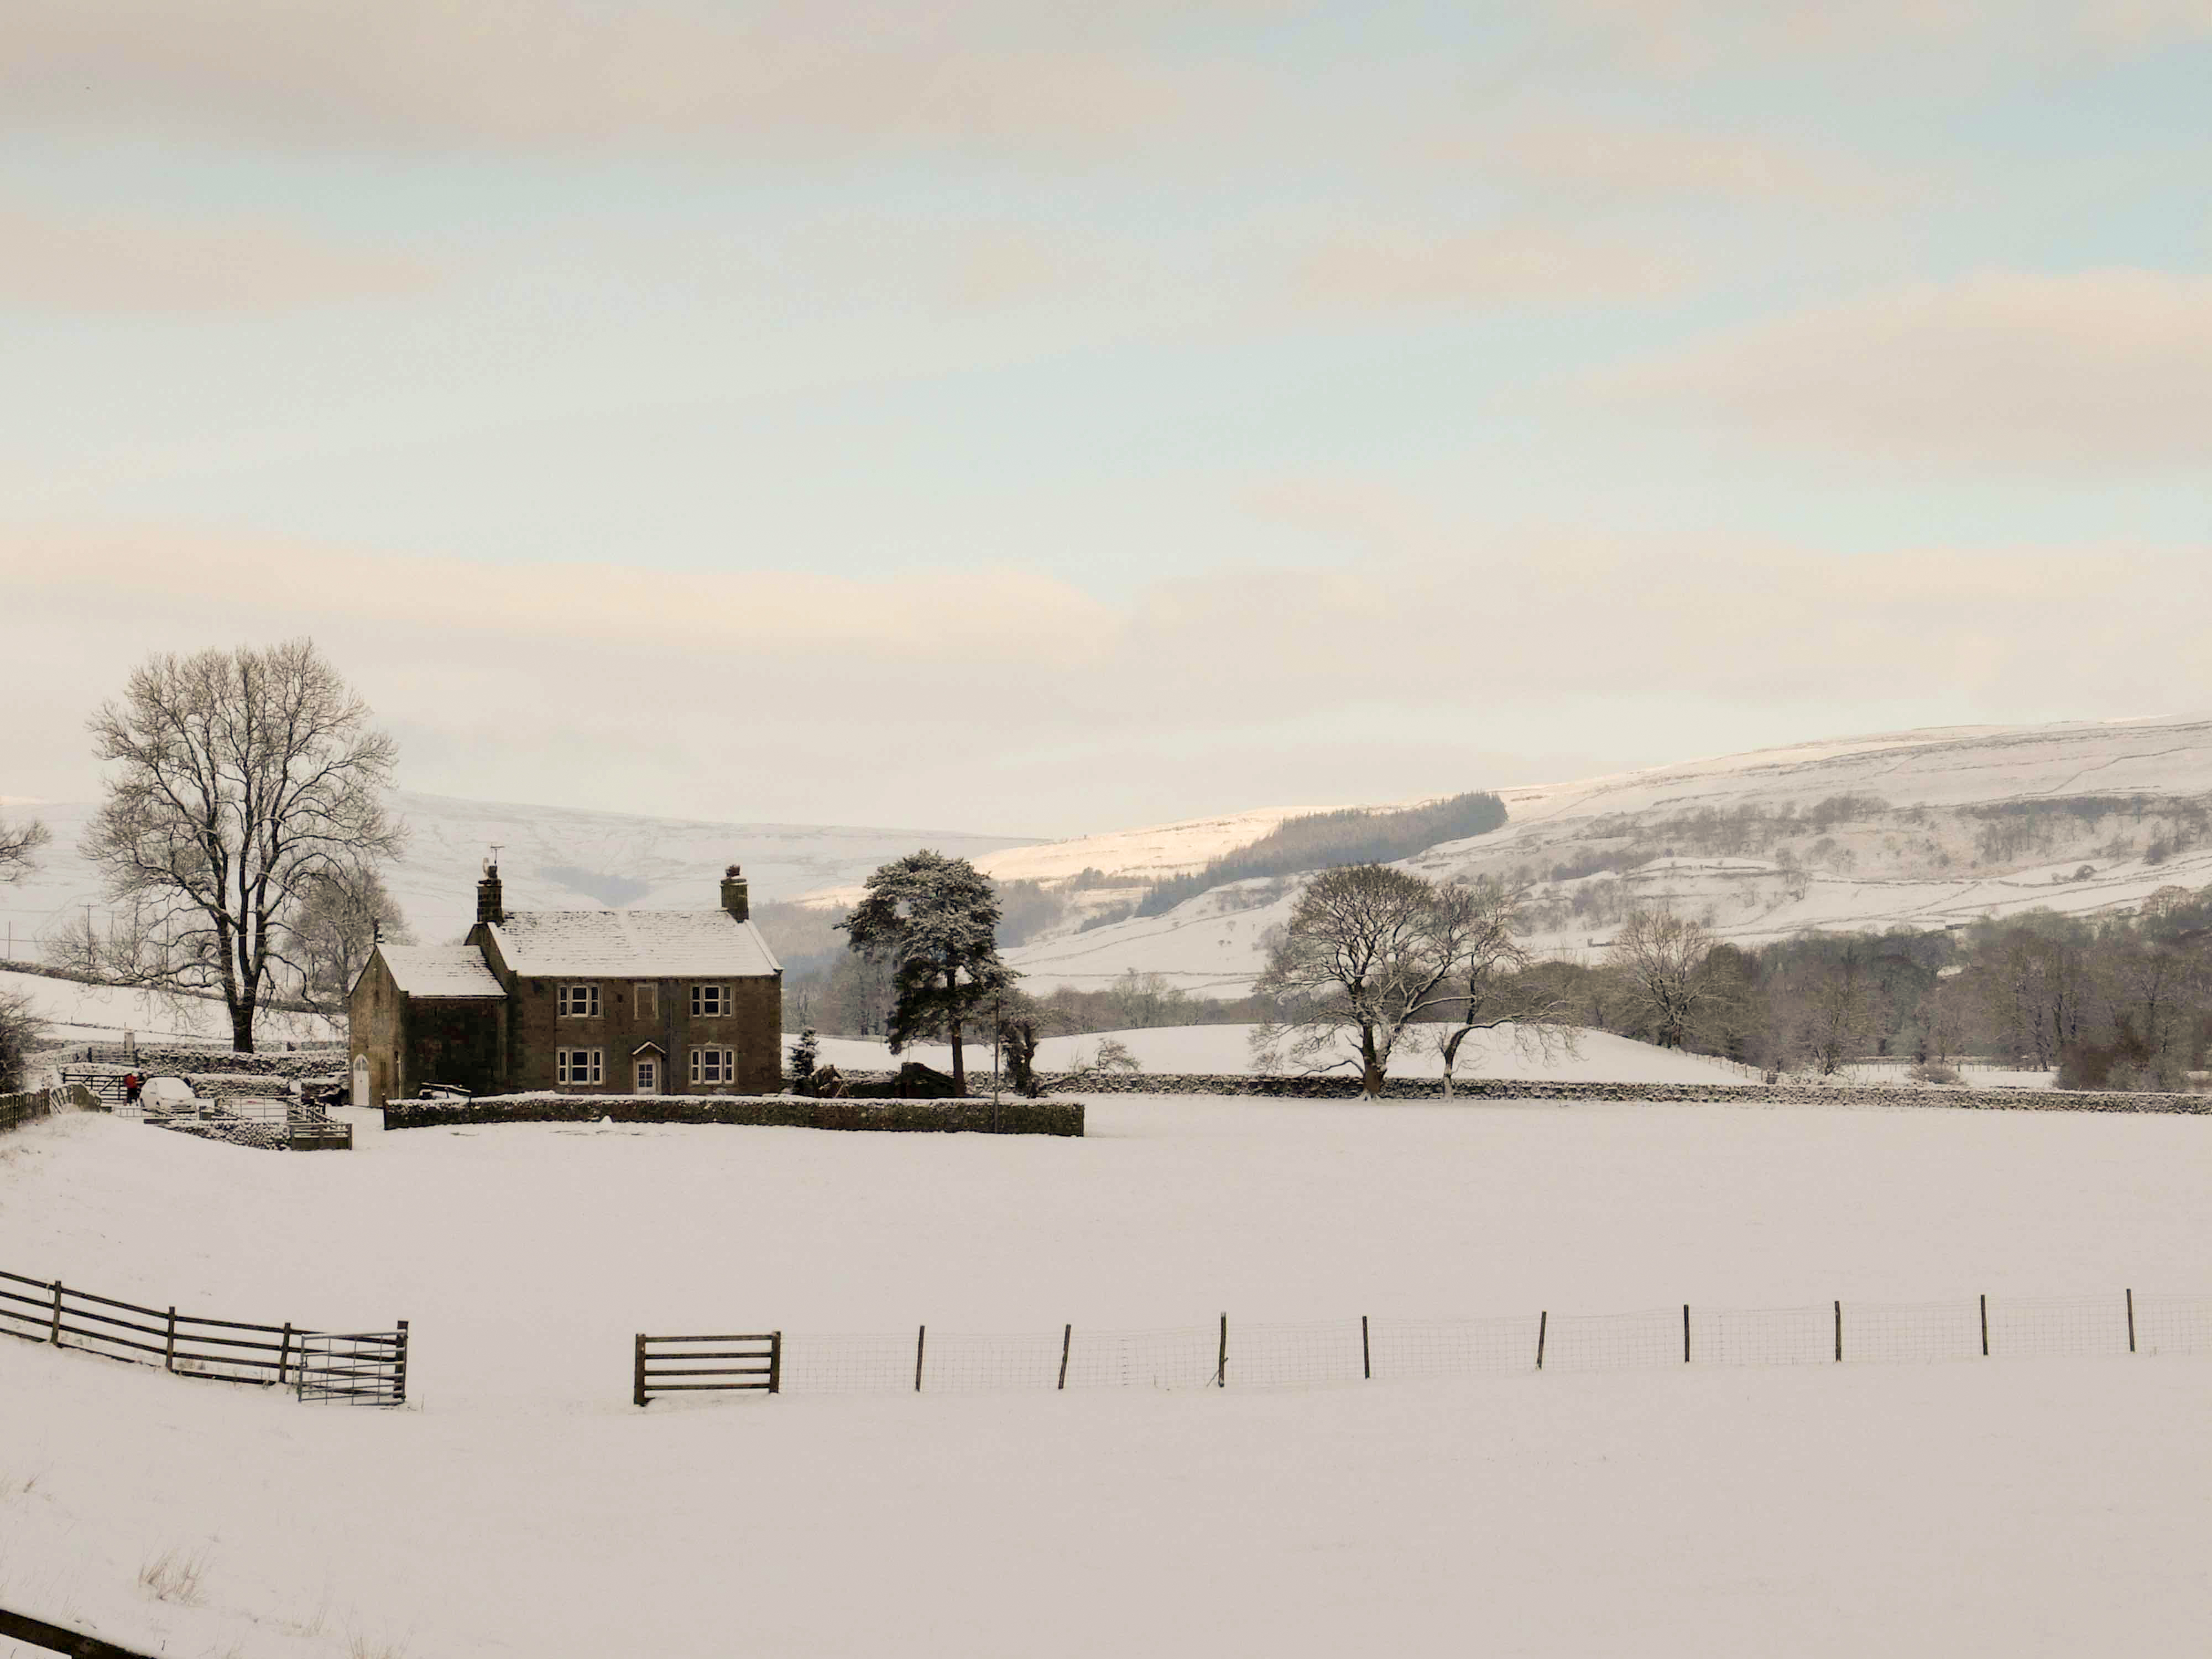 Winter Yorkshire Dales (6)